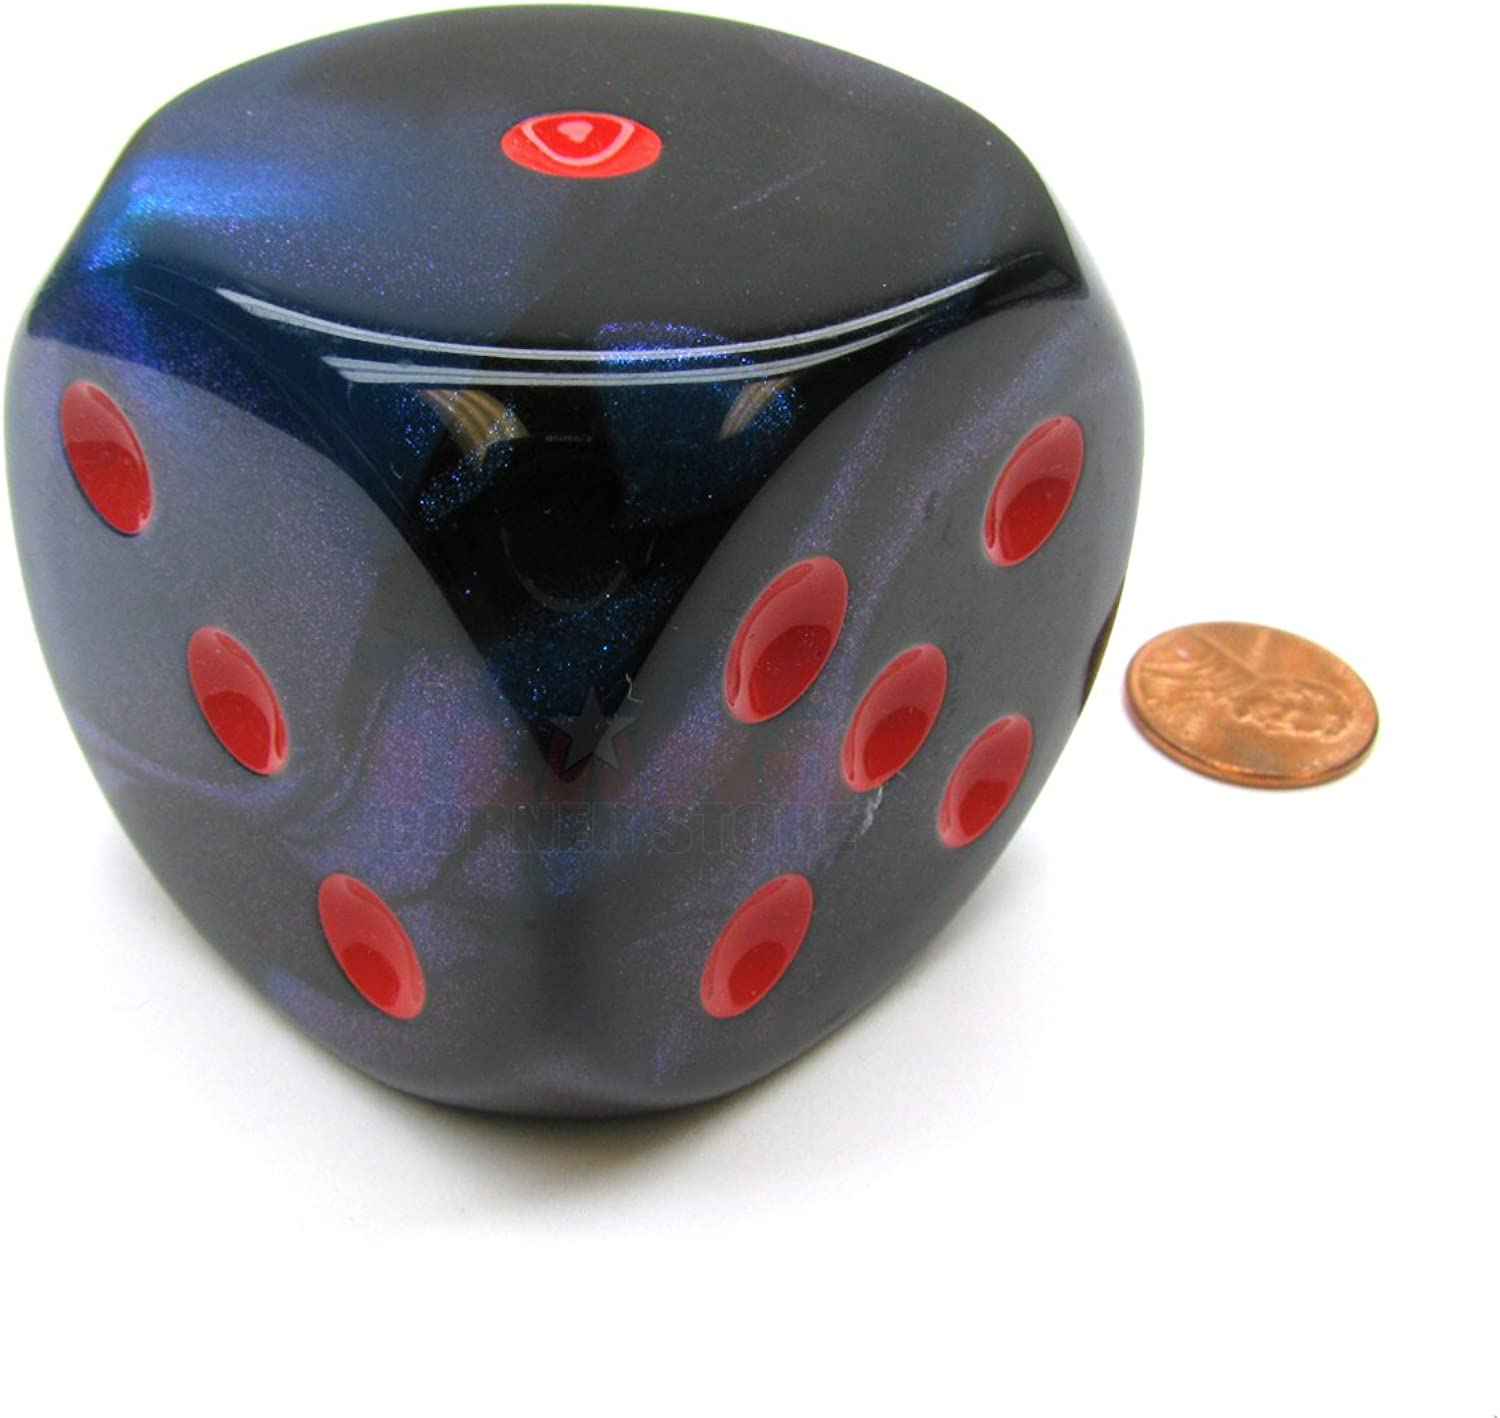 Gemini 50mm Huge Large D6 Chessex Dice, 1 Piece  BlackStarlight with Red Pips by Chessex